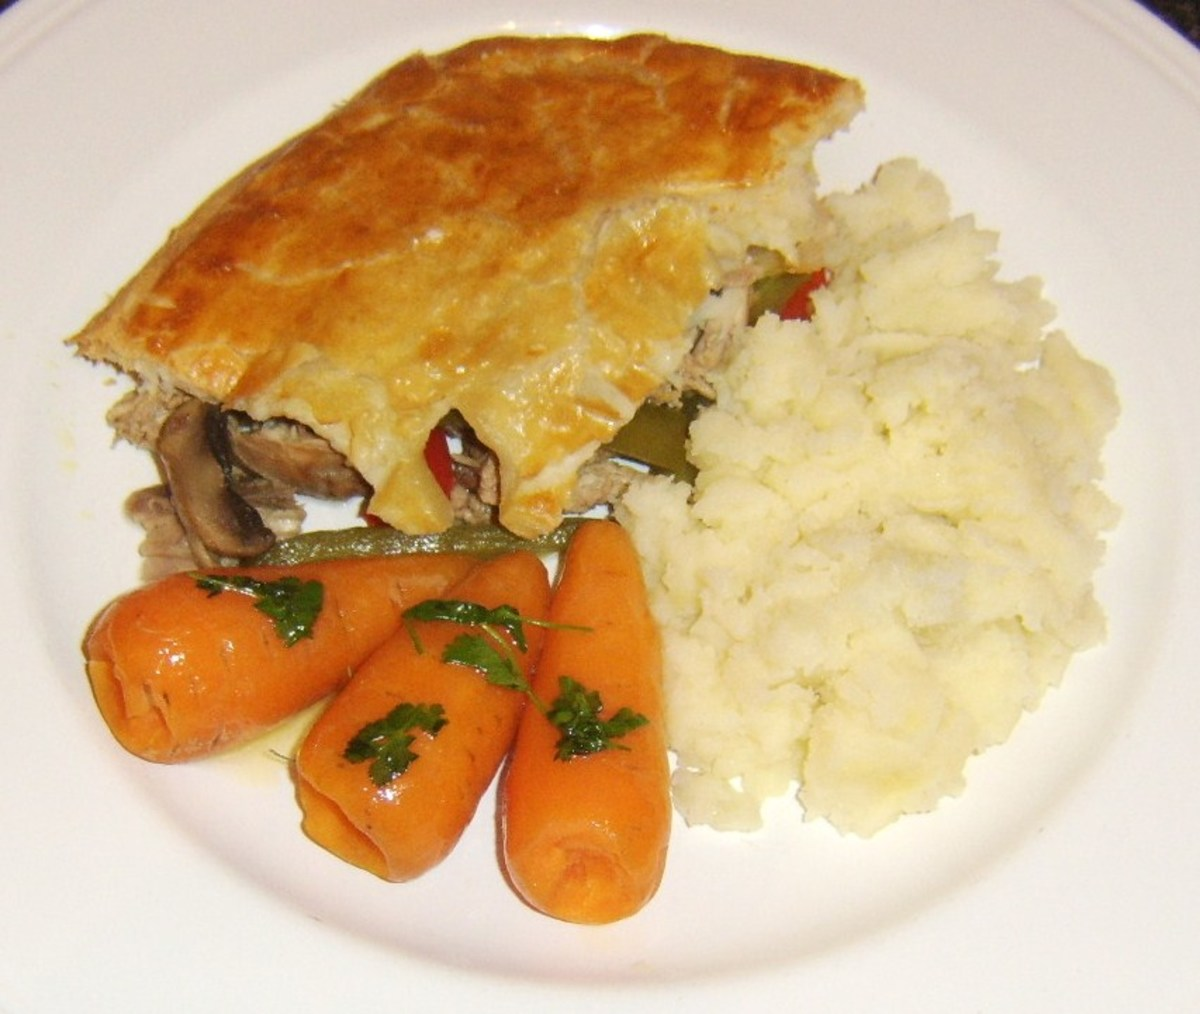 Rabbit and pork pie with bell peppers and mushrooms is served with mashed potatoes and Chantenay carrots